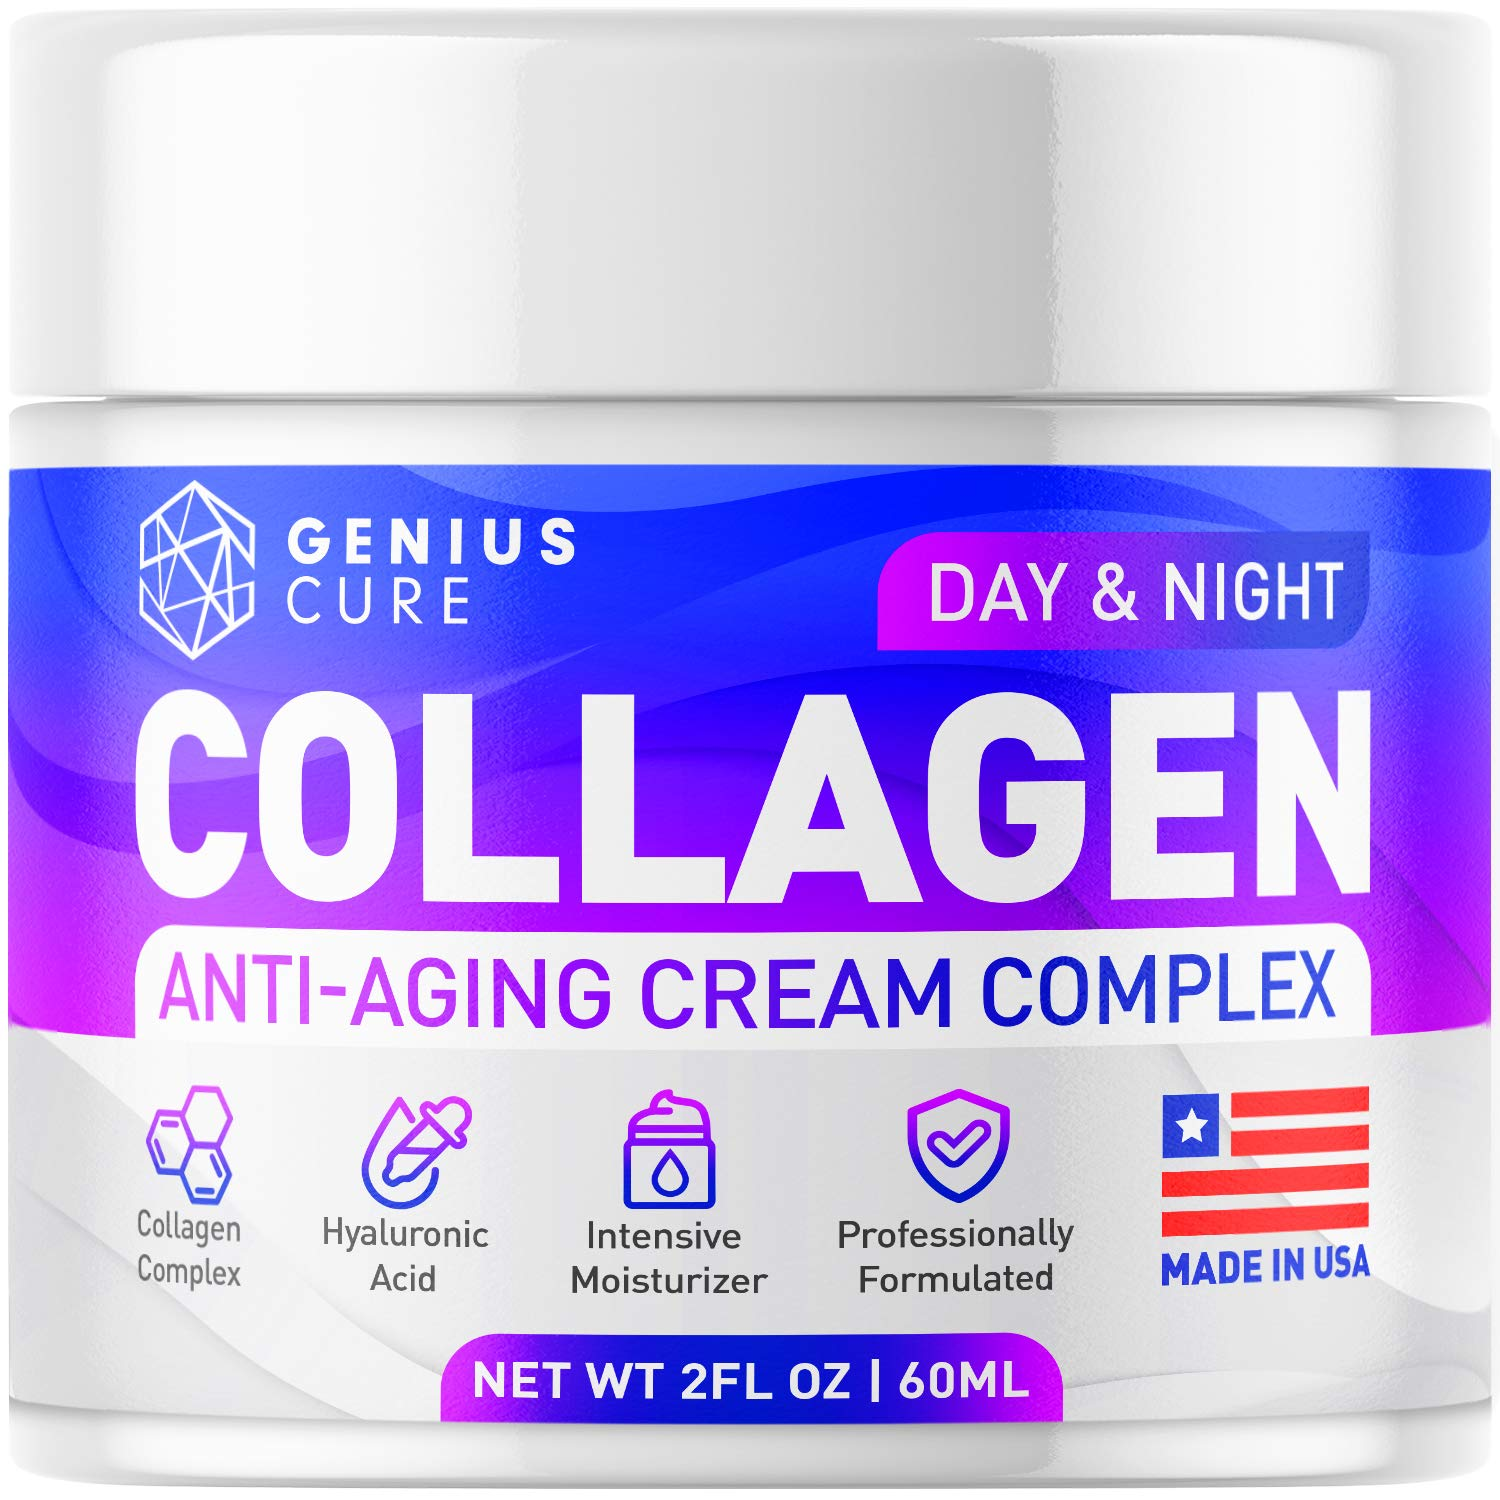 Collagen Cream - Anti Aging Face Moisturizer - Day & Night Wrinkle Cream - Hyaluronic Acid & Vitamin E - Cleanse, Moisturize, and Protect Your Skin 2oz